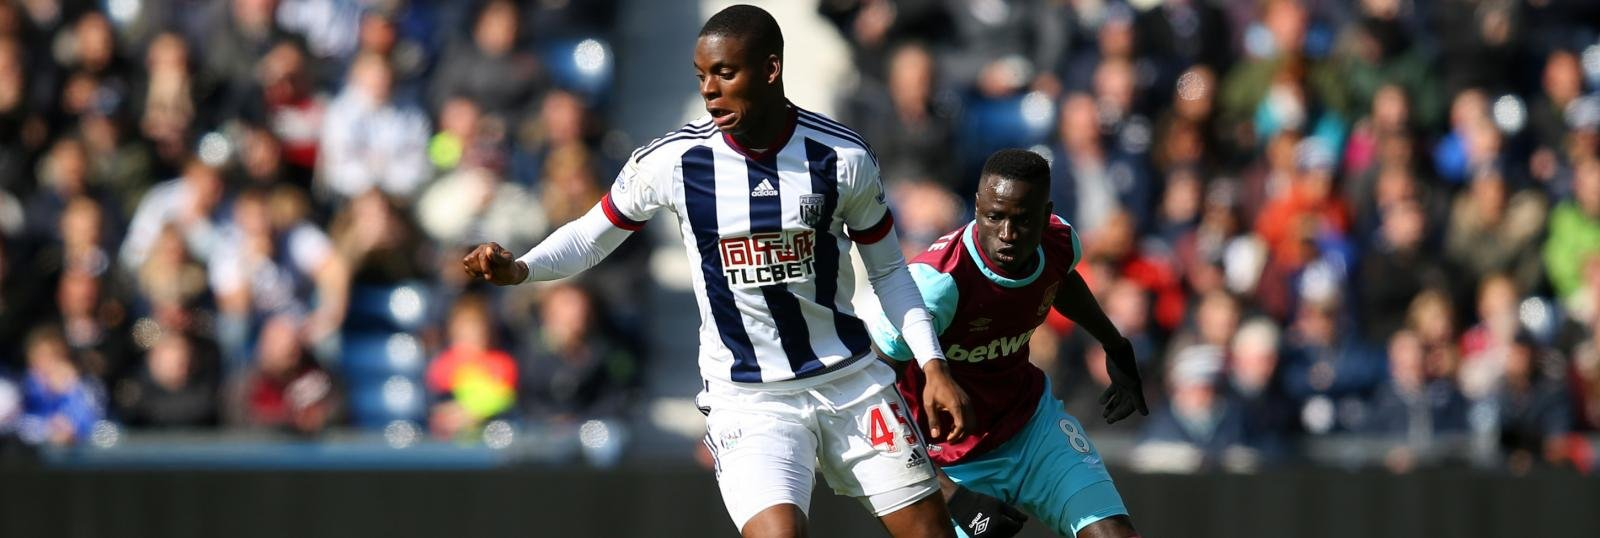 West Brom's bog standard transfer window gives Leko, Wilson and Field a chance to shine